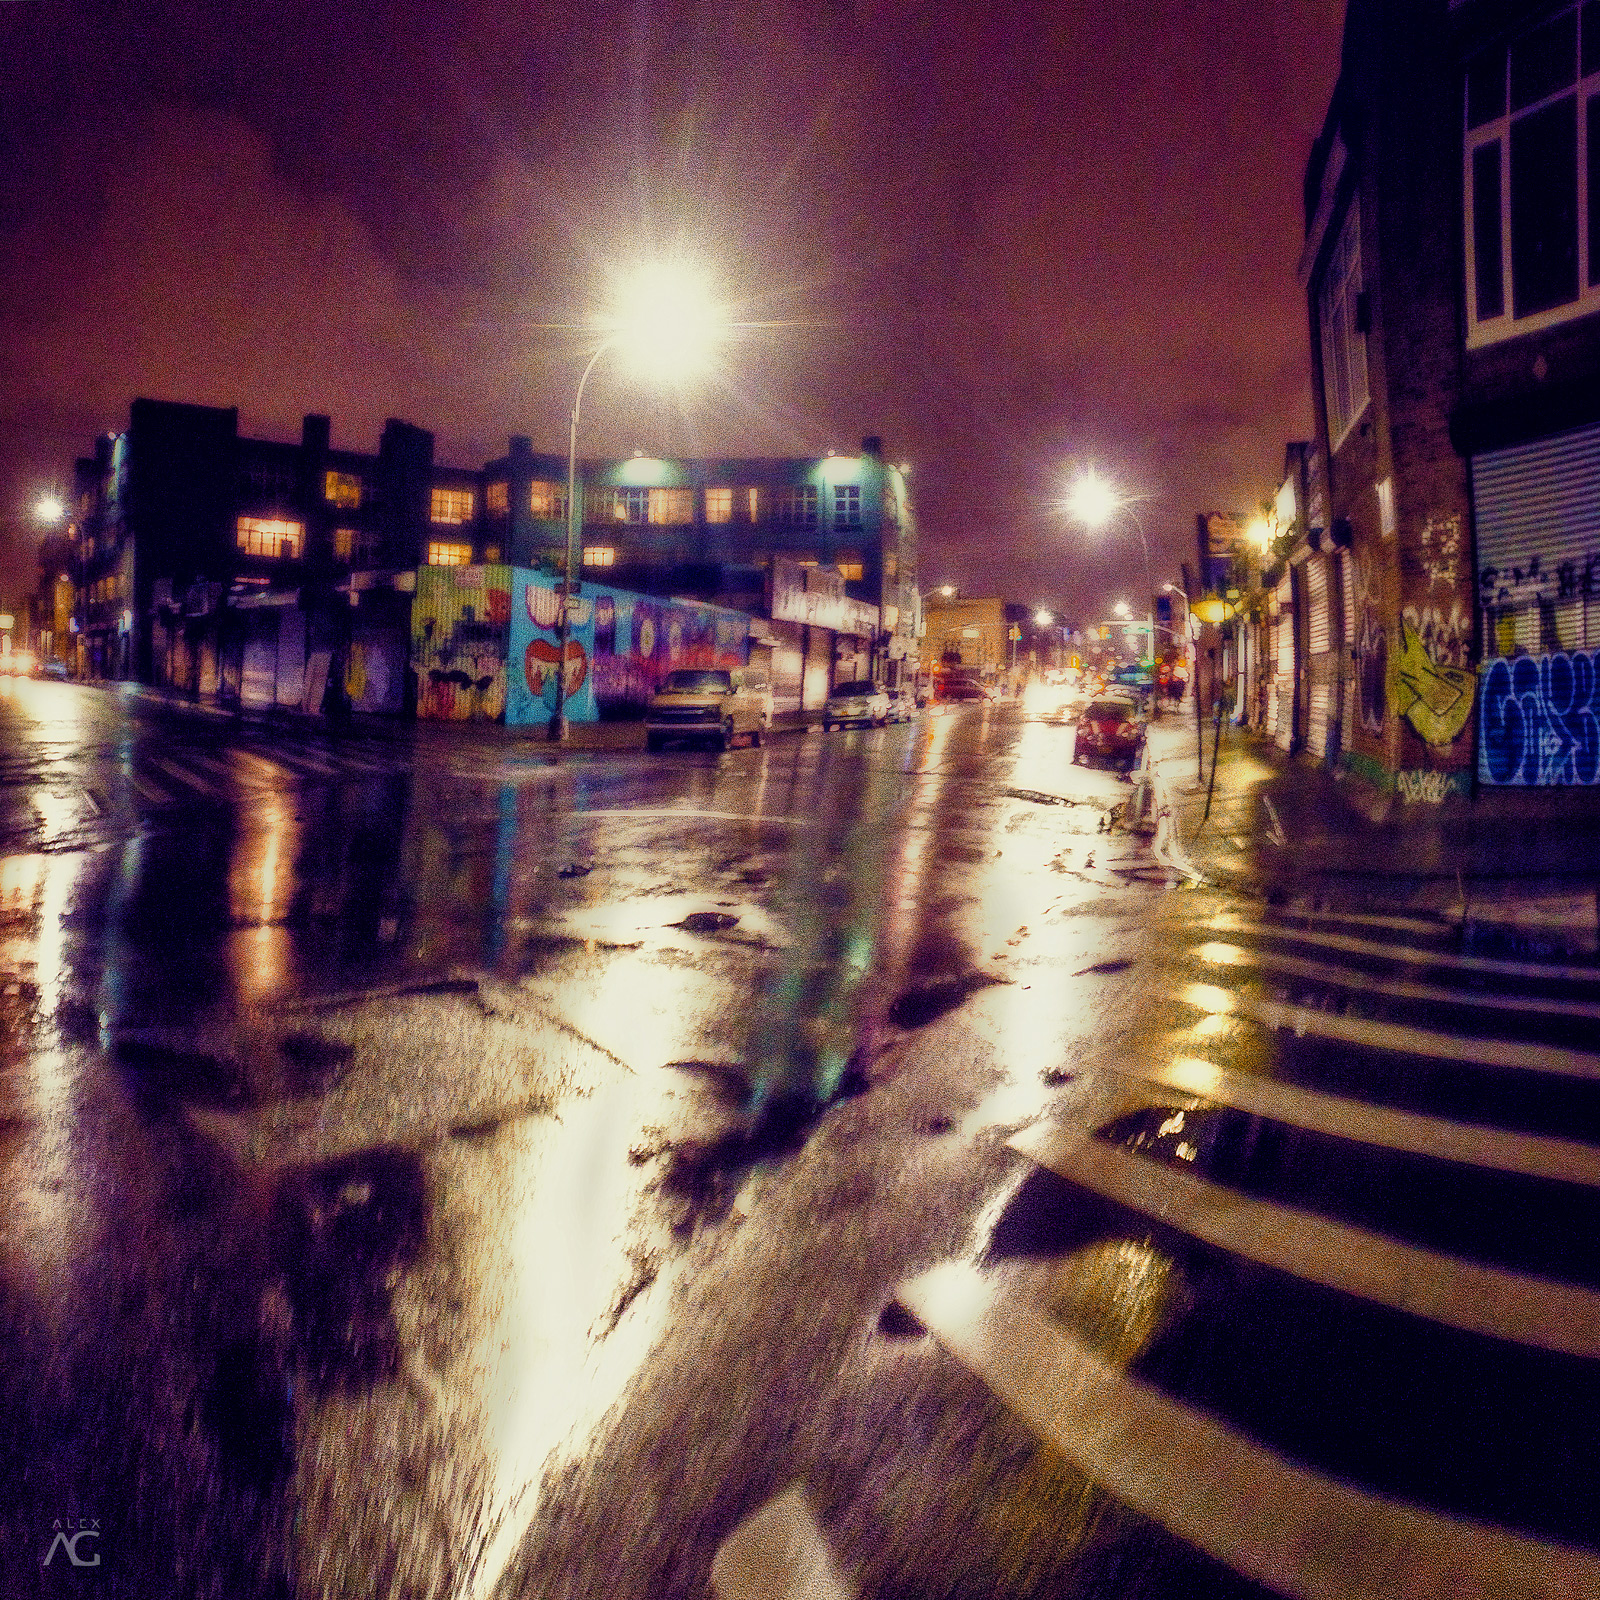 nightWilliamsburgStreetUnderRain_warped_1600